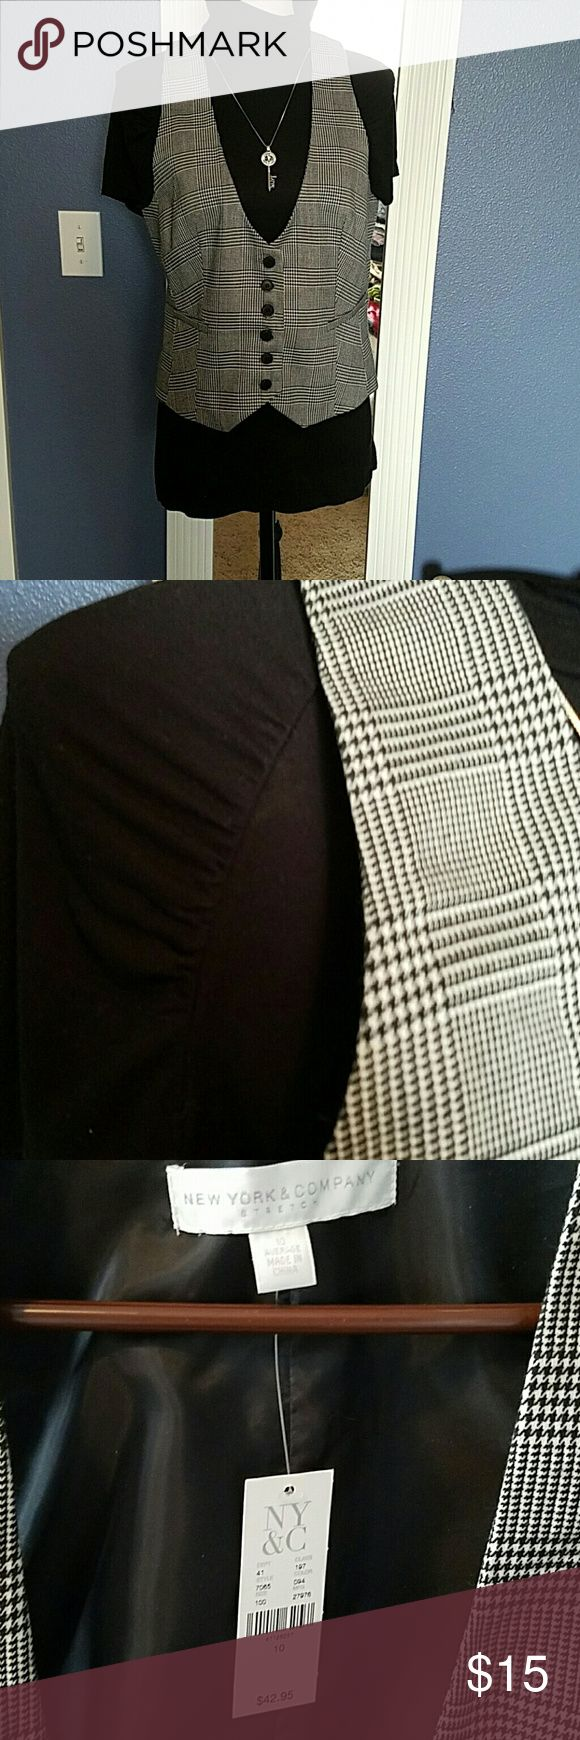 Top and vest NWT black and white hounds tooth size 10 vest with black size medium short sleeve turtleneck has some ruching on the seams by the sleeves. Looks great with slacks or for a casual look you could wear with your favorite jeans. New York & Company Tops